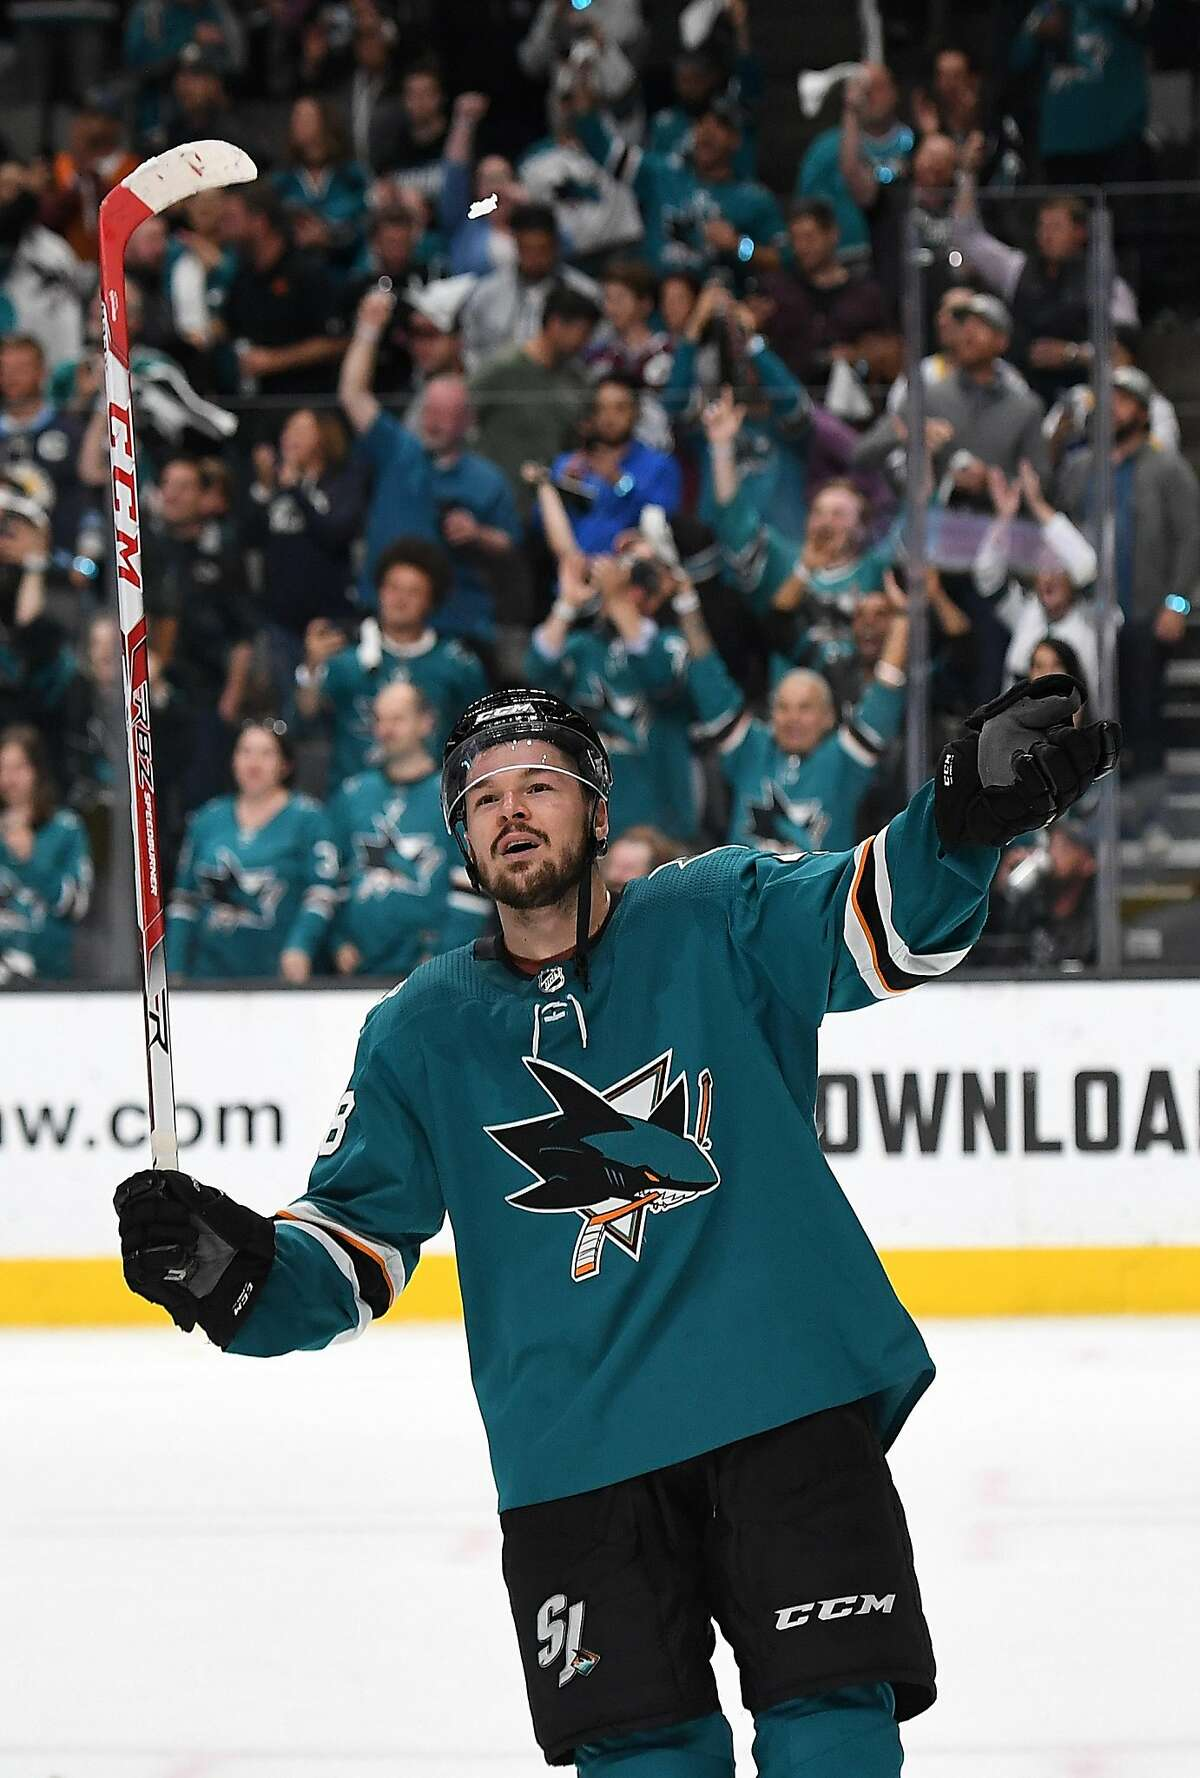 SAN JOSE, CA - MAY 08: Tomáš Hertl #48 of the San Jose Sharks celebrates after they defeated the Colorado Avalanche 3-2 in Game Seven of the Western Conference Second Round during the 2019 NHL Stanley Cup Playoffs at SAP Center on May 8, 2019 in San Jose, California.